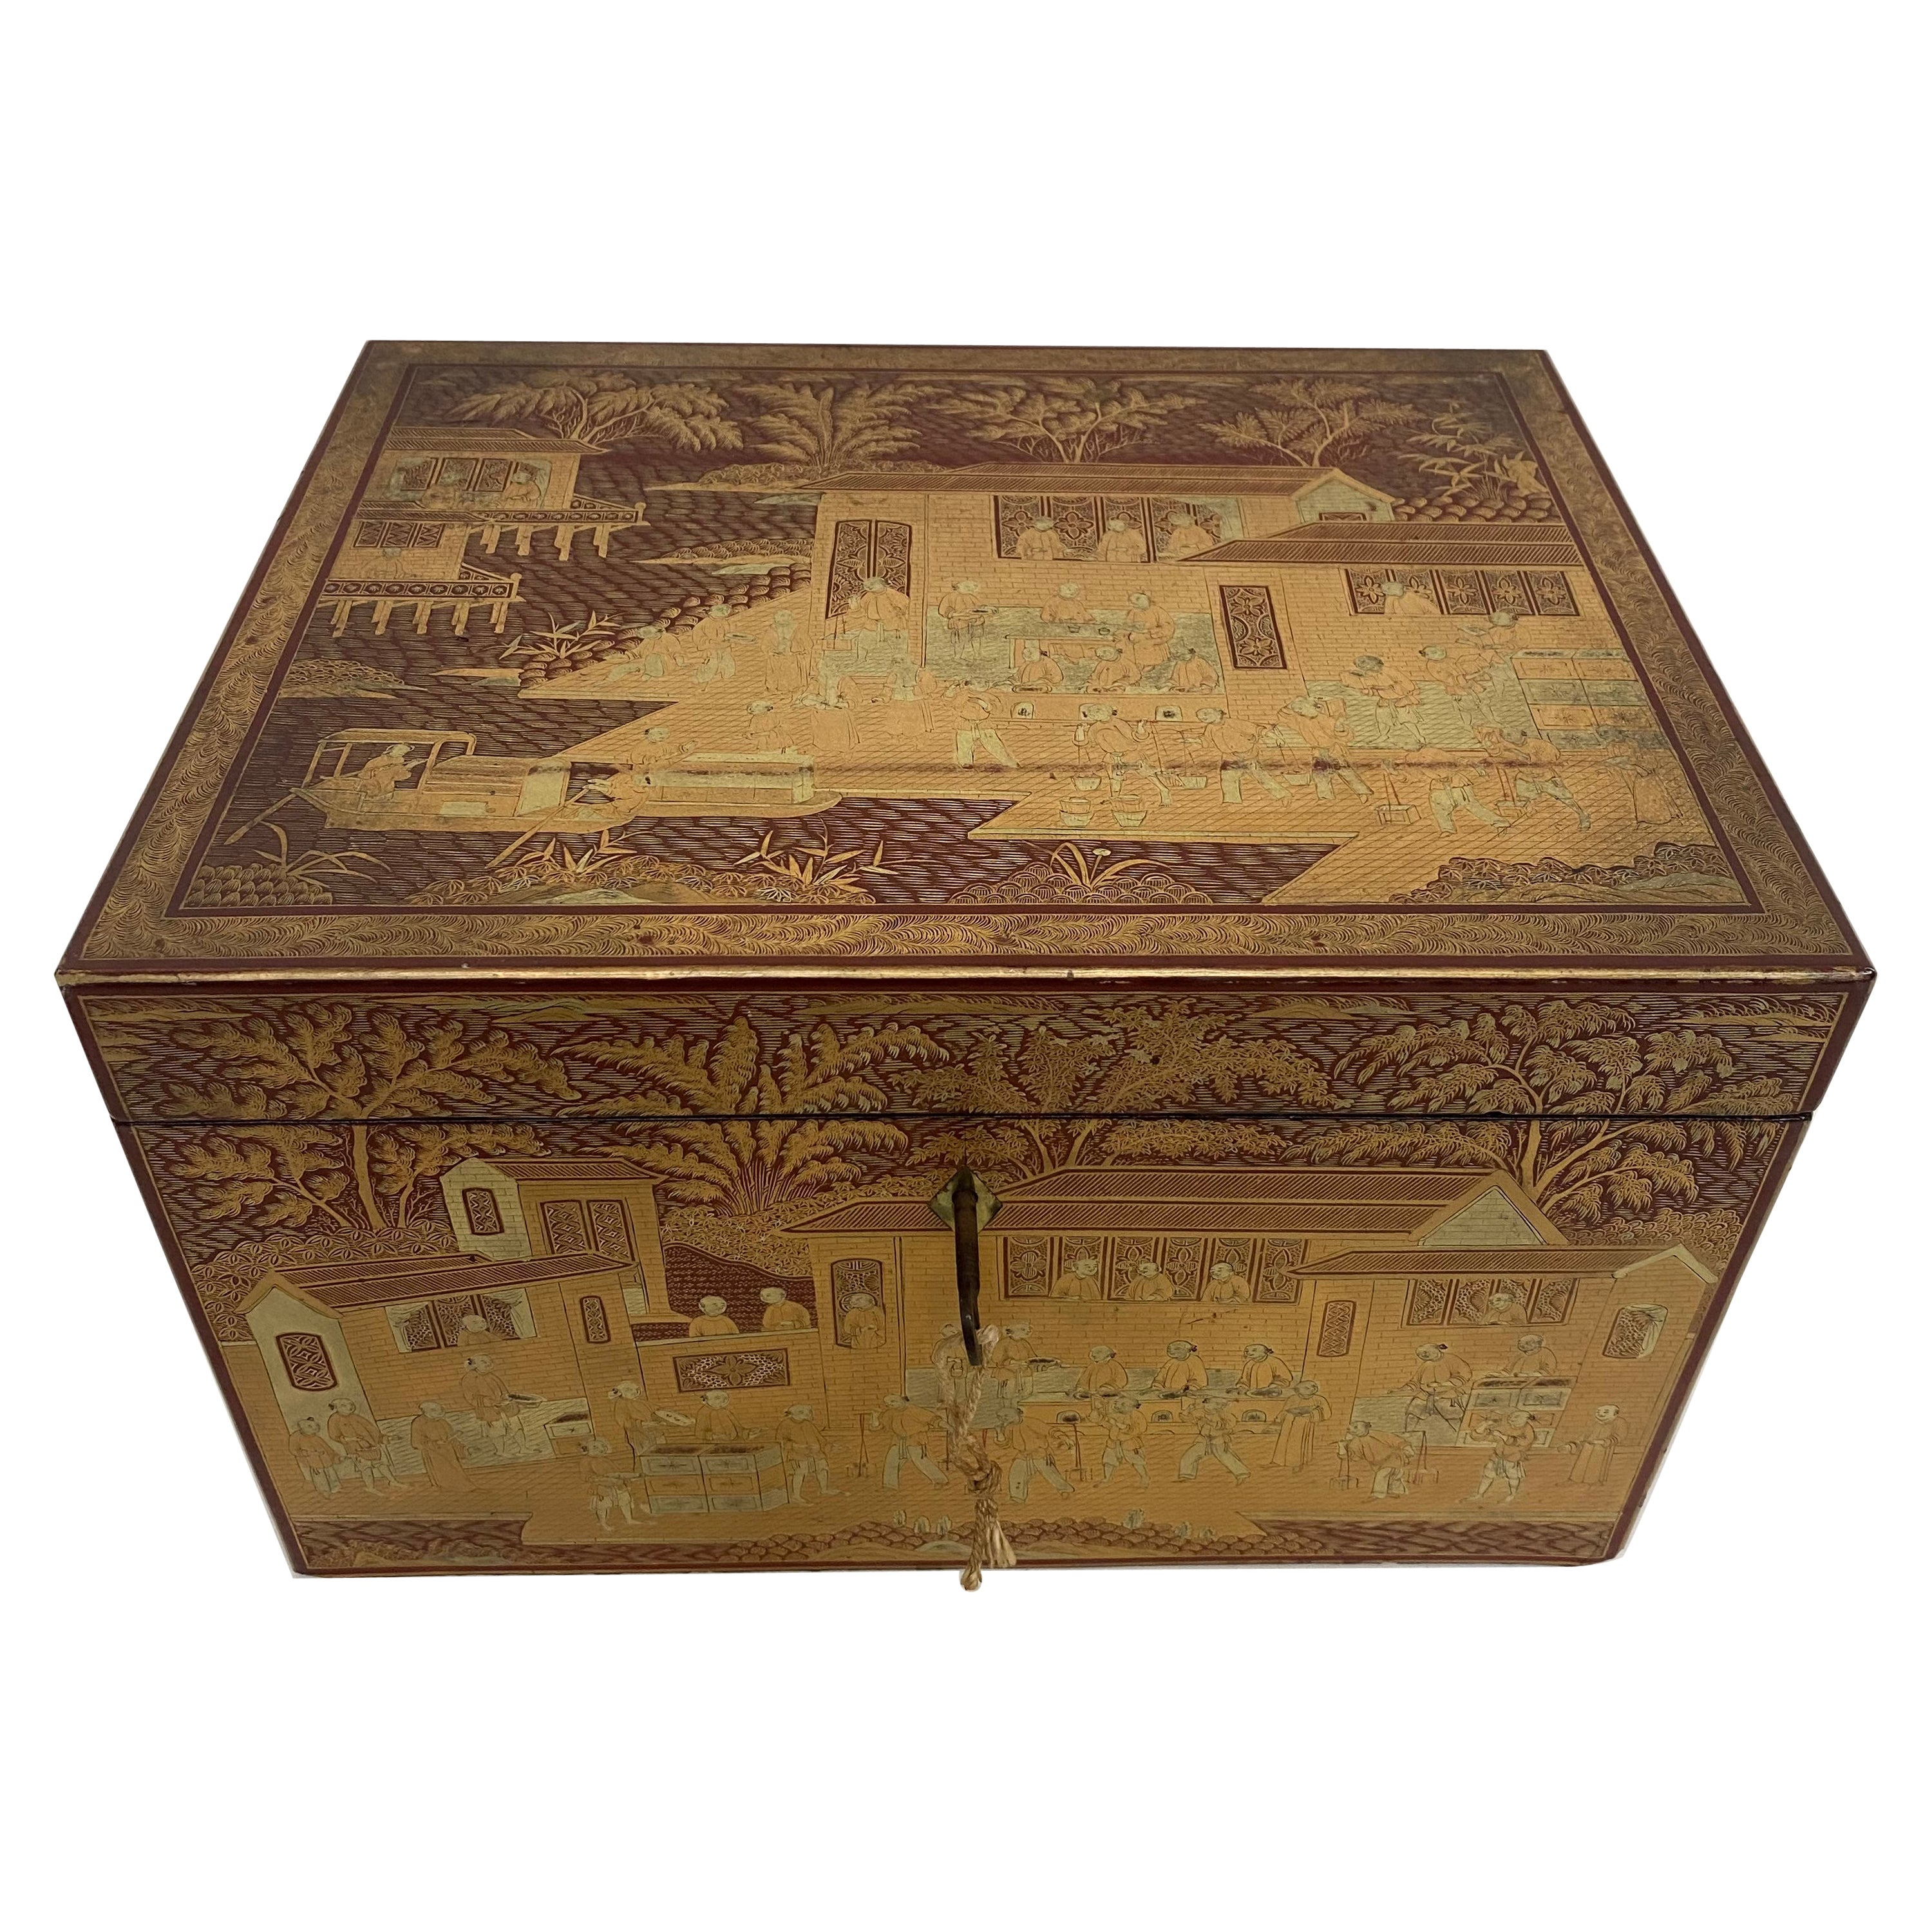 19th Century Large Gilt Lacquer Chinese Tea Caddy